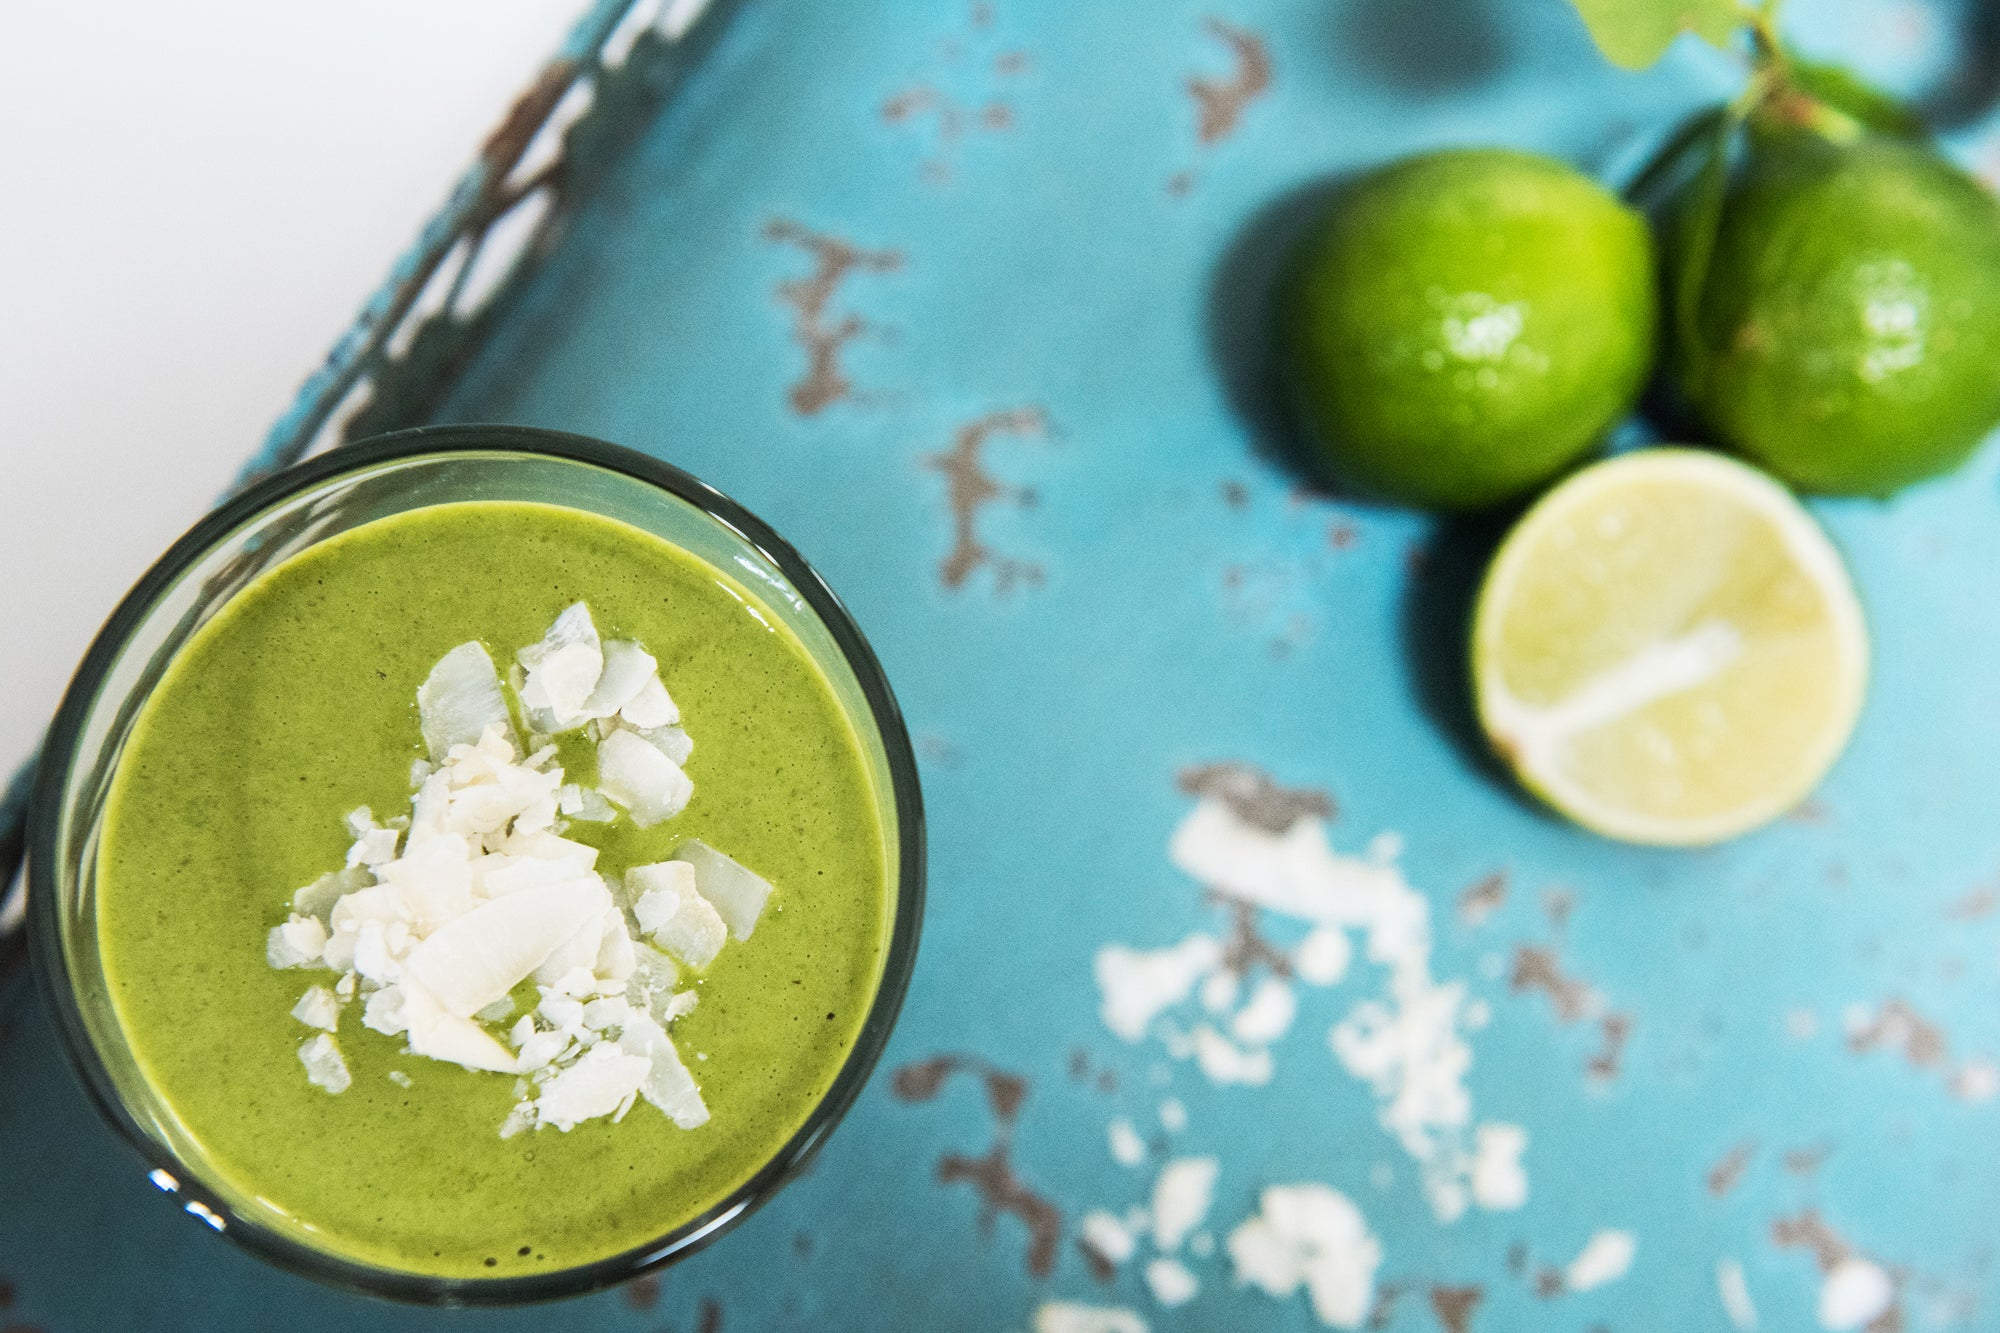 CocoLime Smoothie